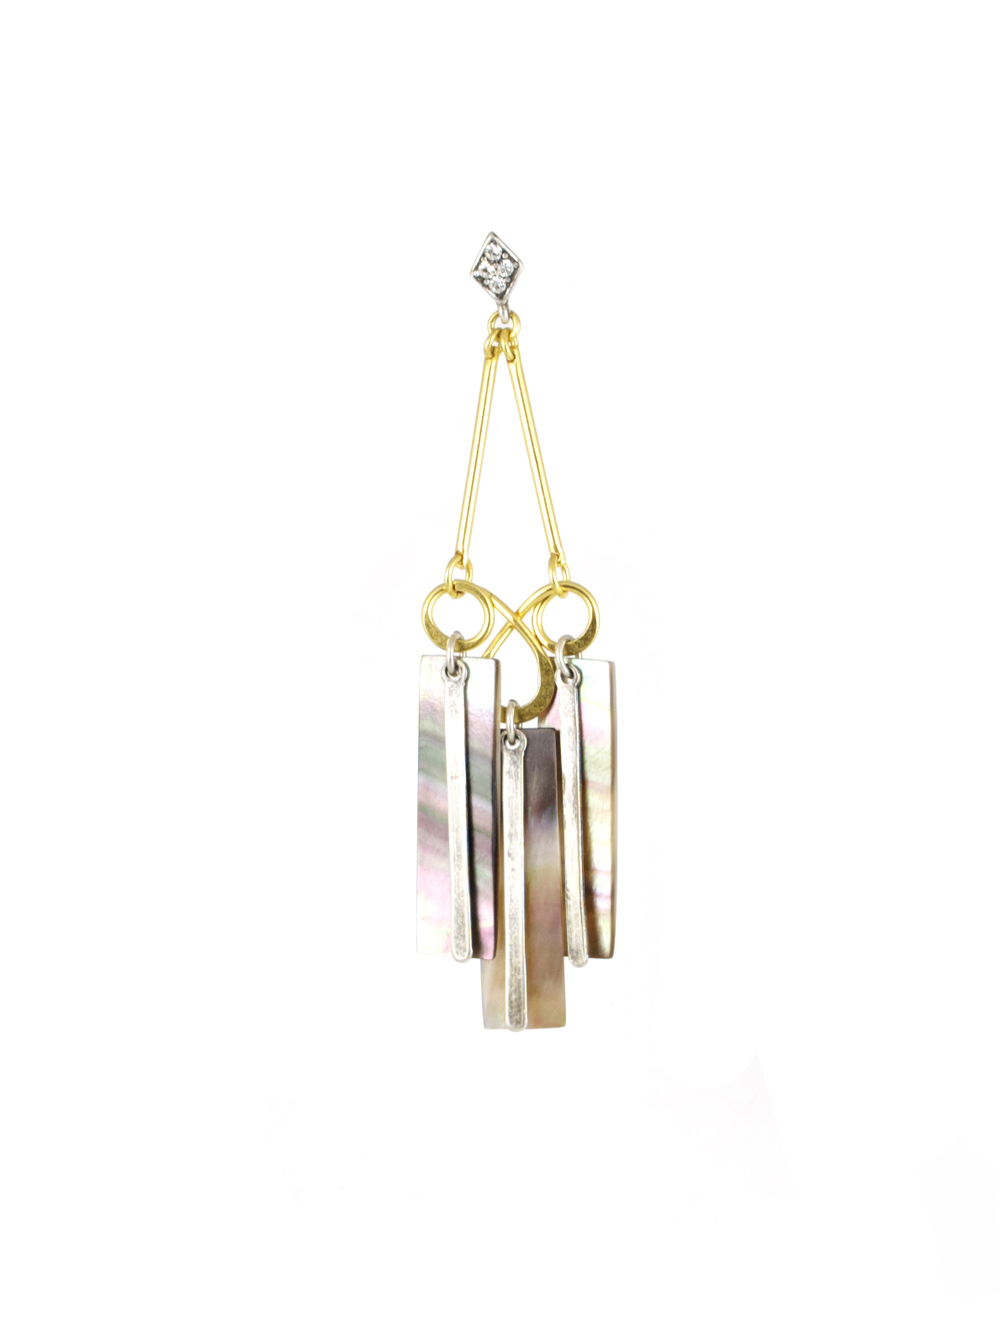 Rainbow Shower chandelier earring,  available at Gerard Yosca .